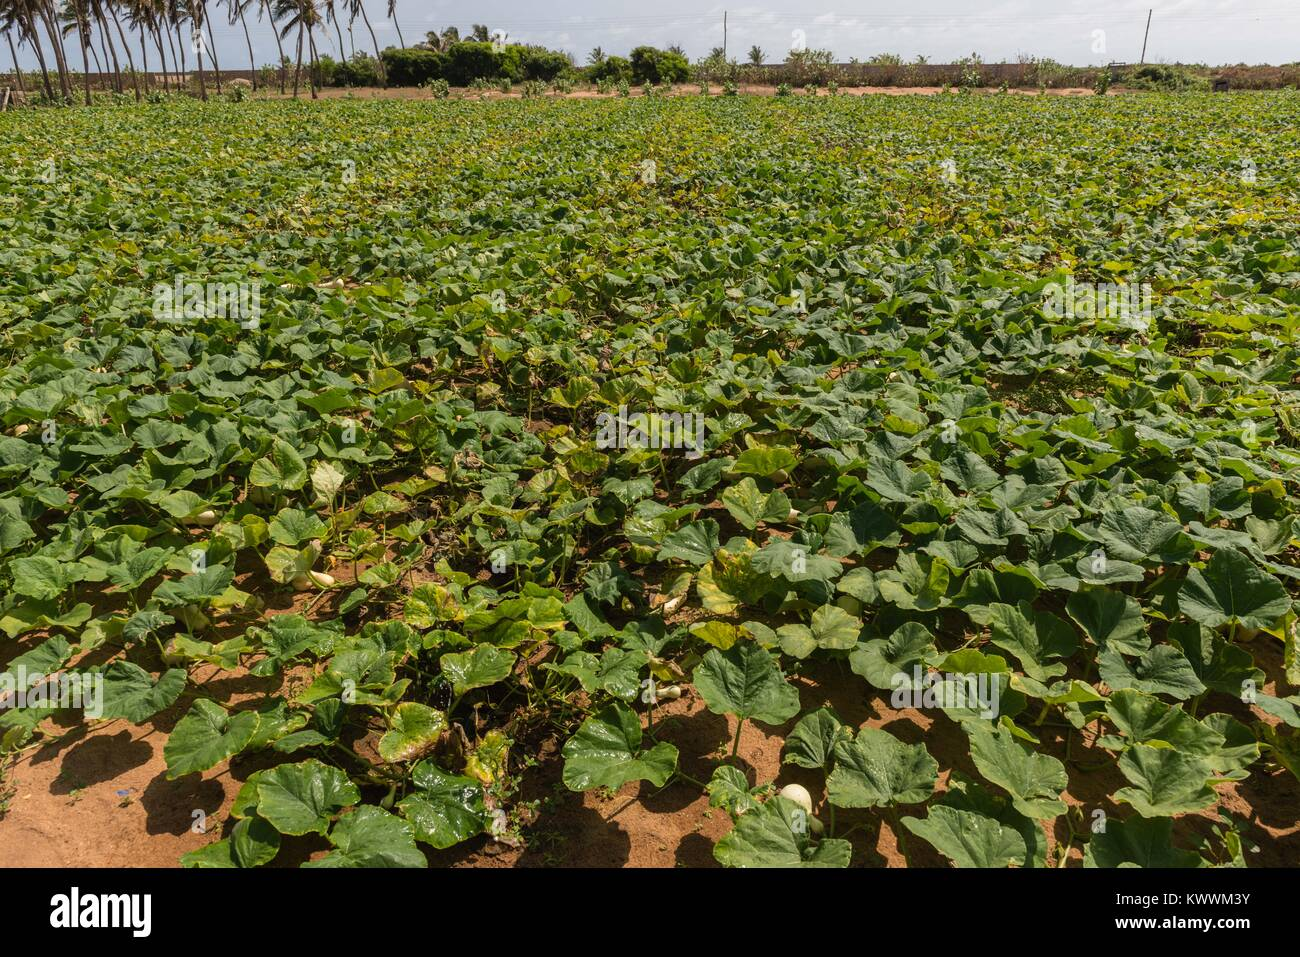 Field of pumpkins, Anloga,  Volta Region, Ghana, Ghana - Stock Image